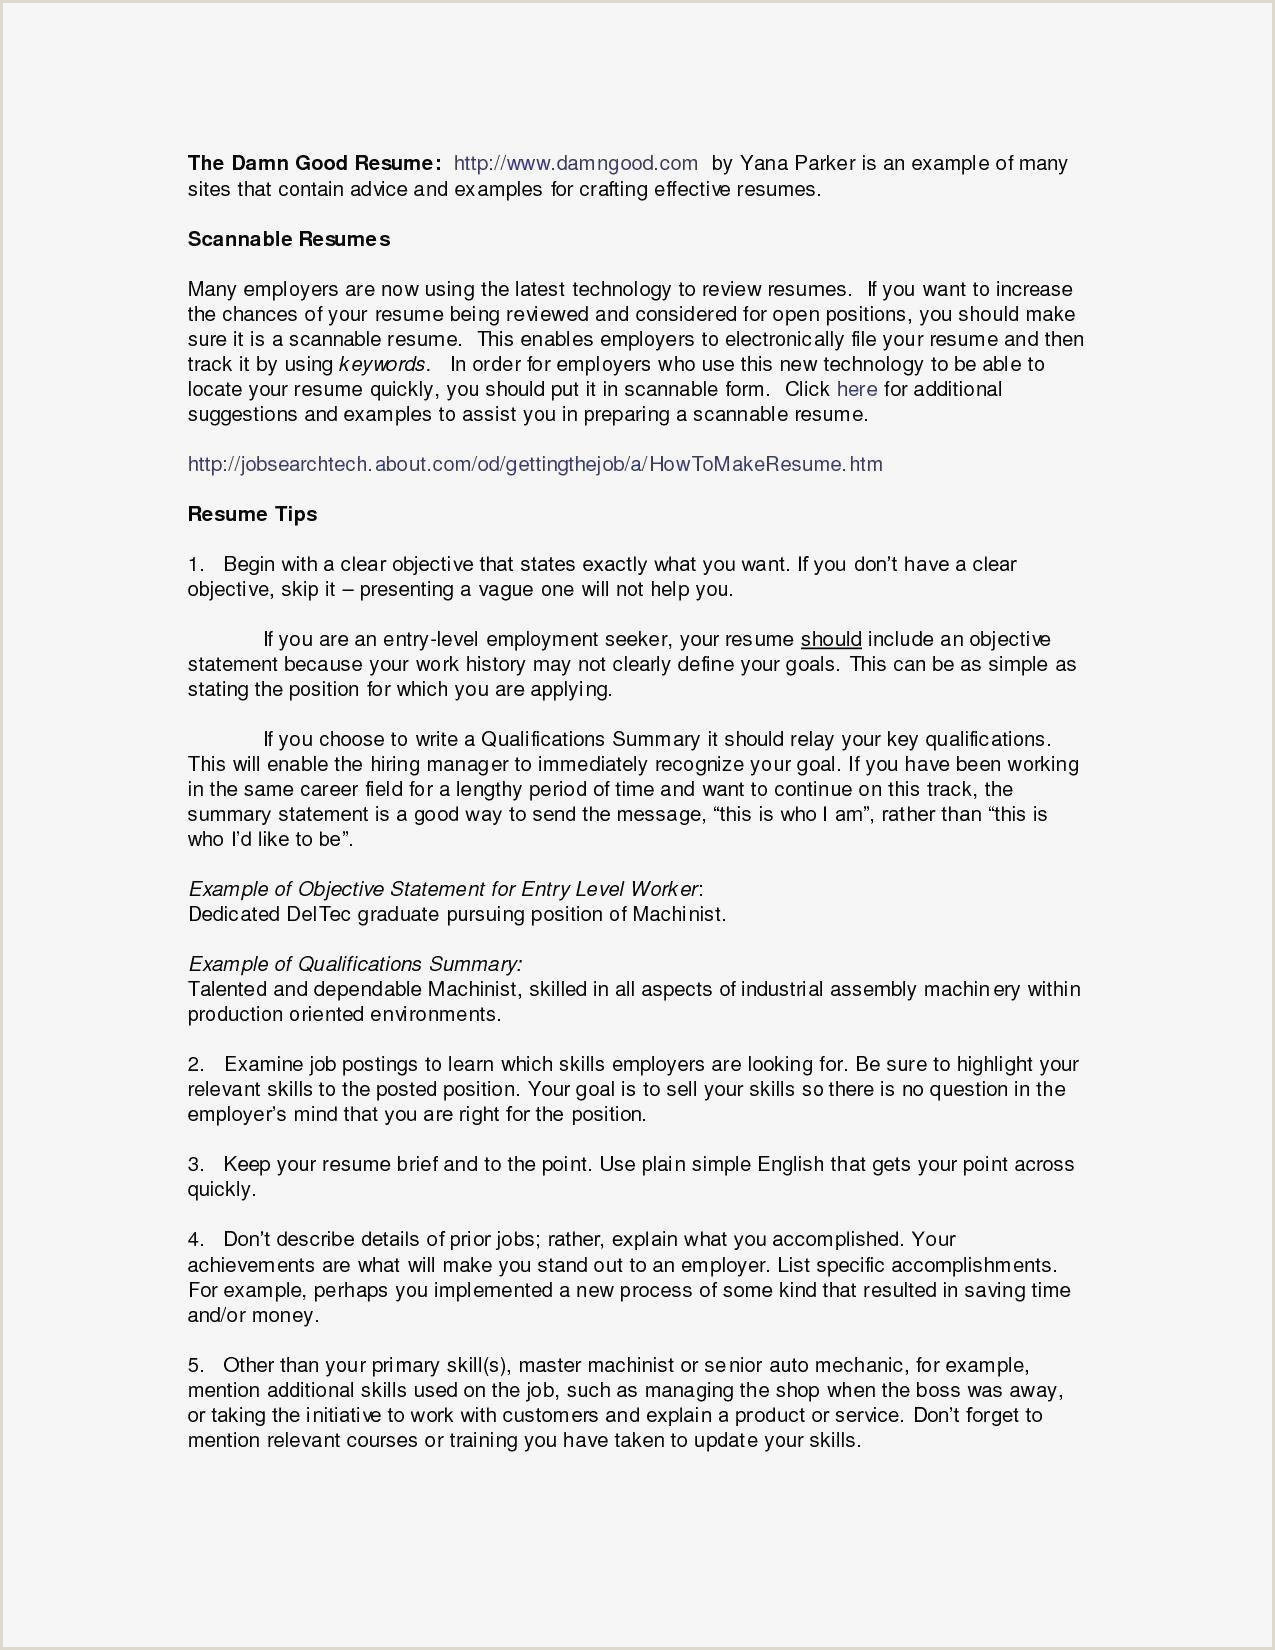 Cv Format For Merchandising Job Undergraduate Cv Example Janice Brooks – Page 2 – Jscribes